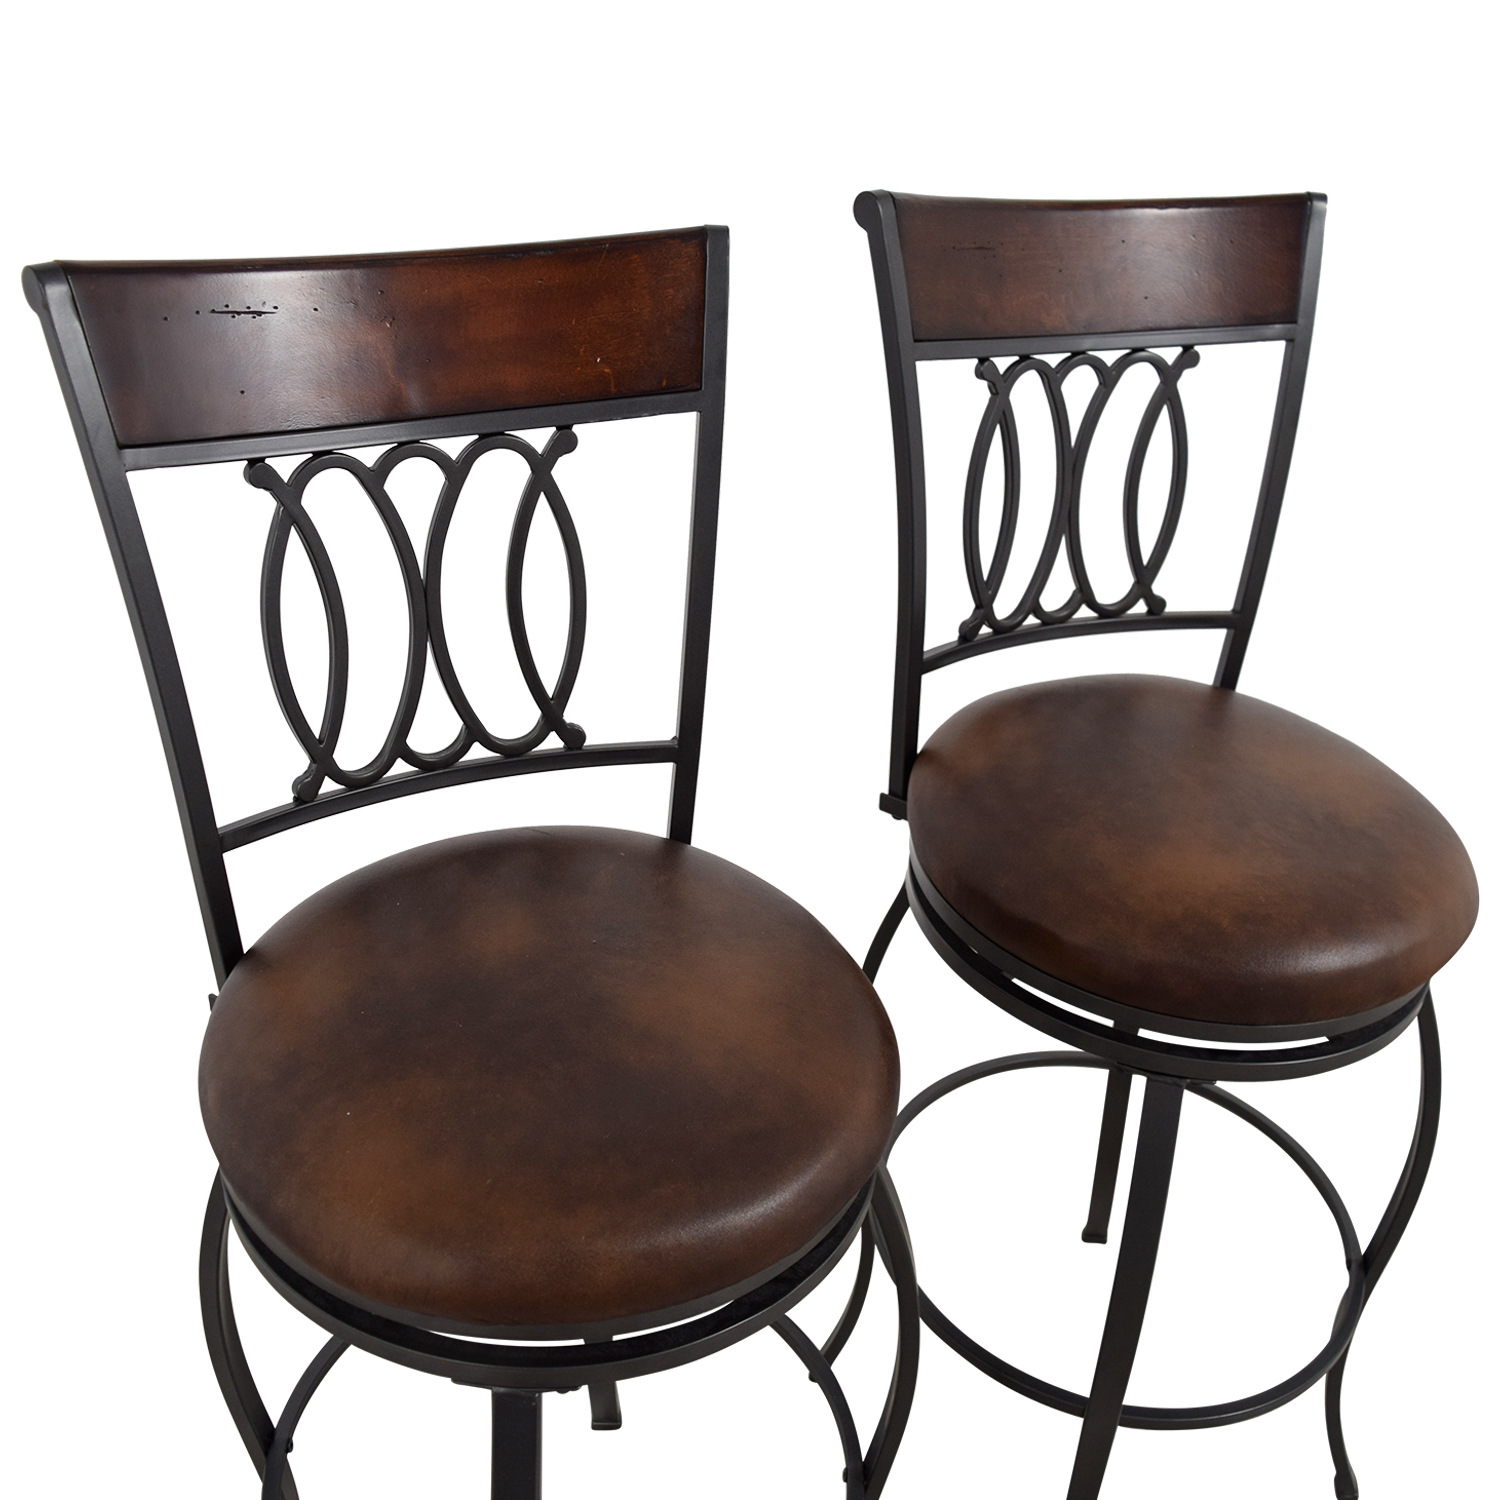 57 Off Bob 39 S Furniture Bob 39 S Furniture Brown Swivel Bar Stools Chairs